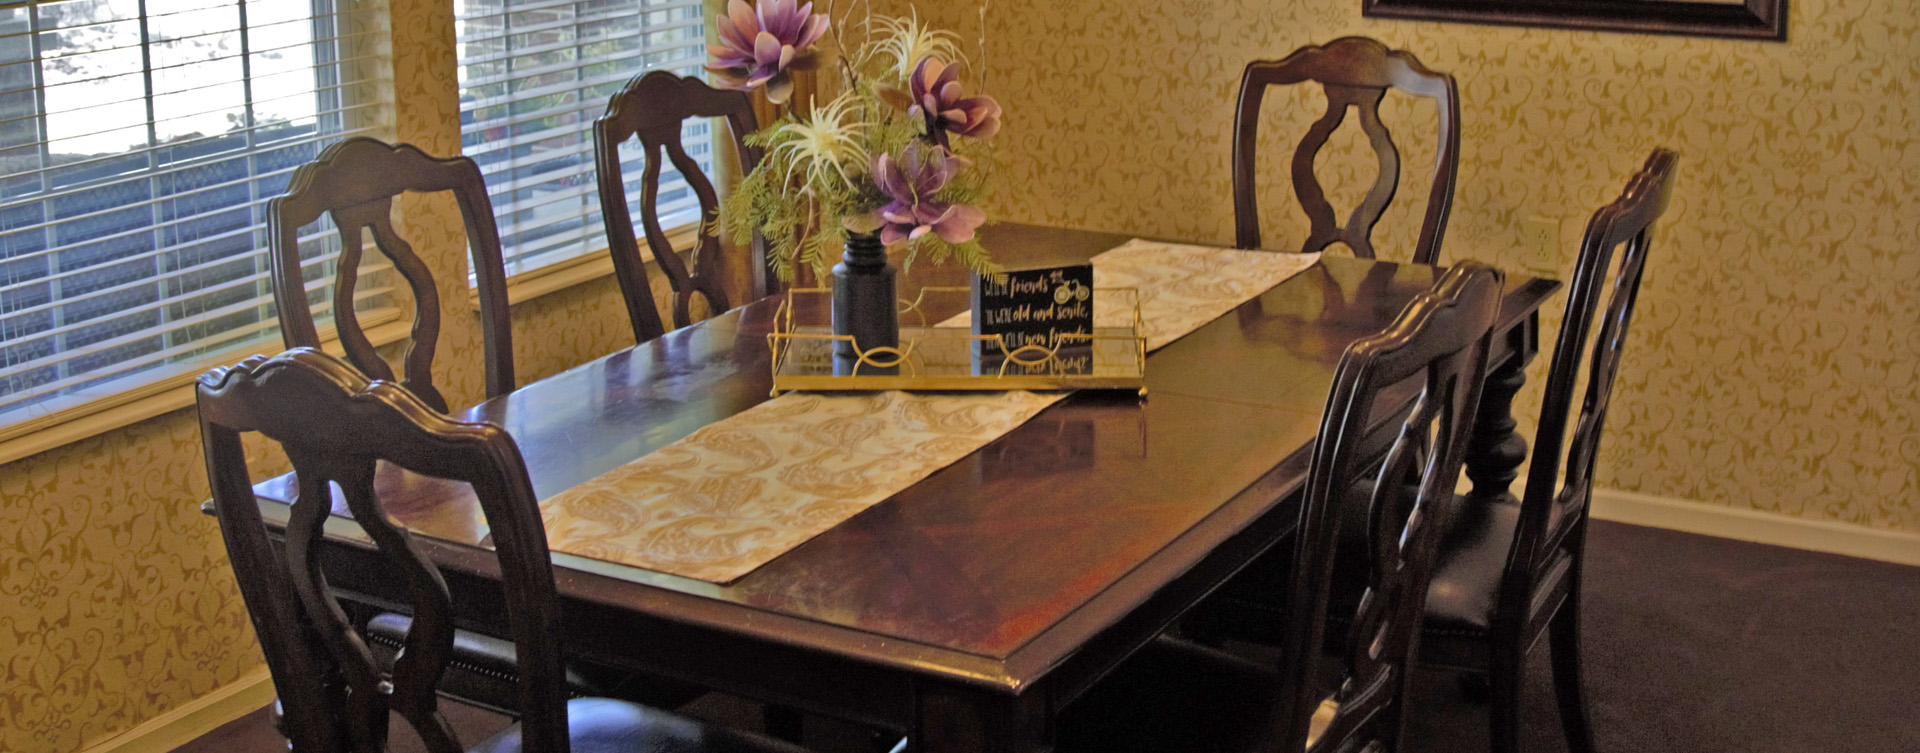 Have fun with themed and holiday meals in the private dining room at Bickford of Cedar Falls